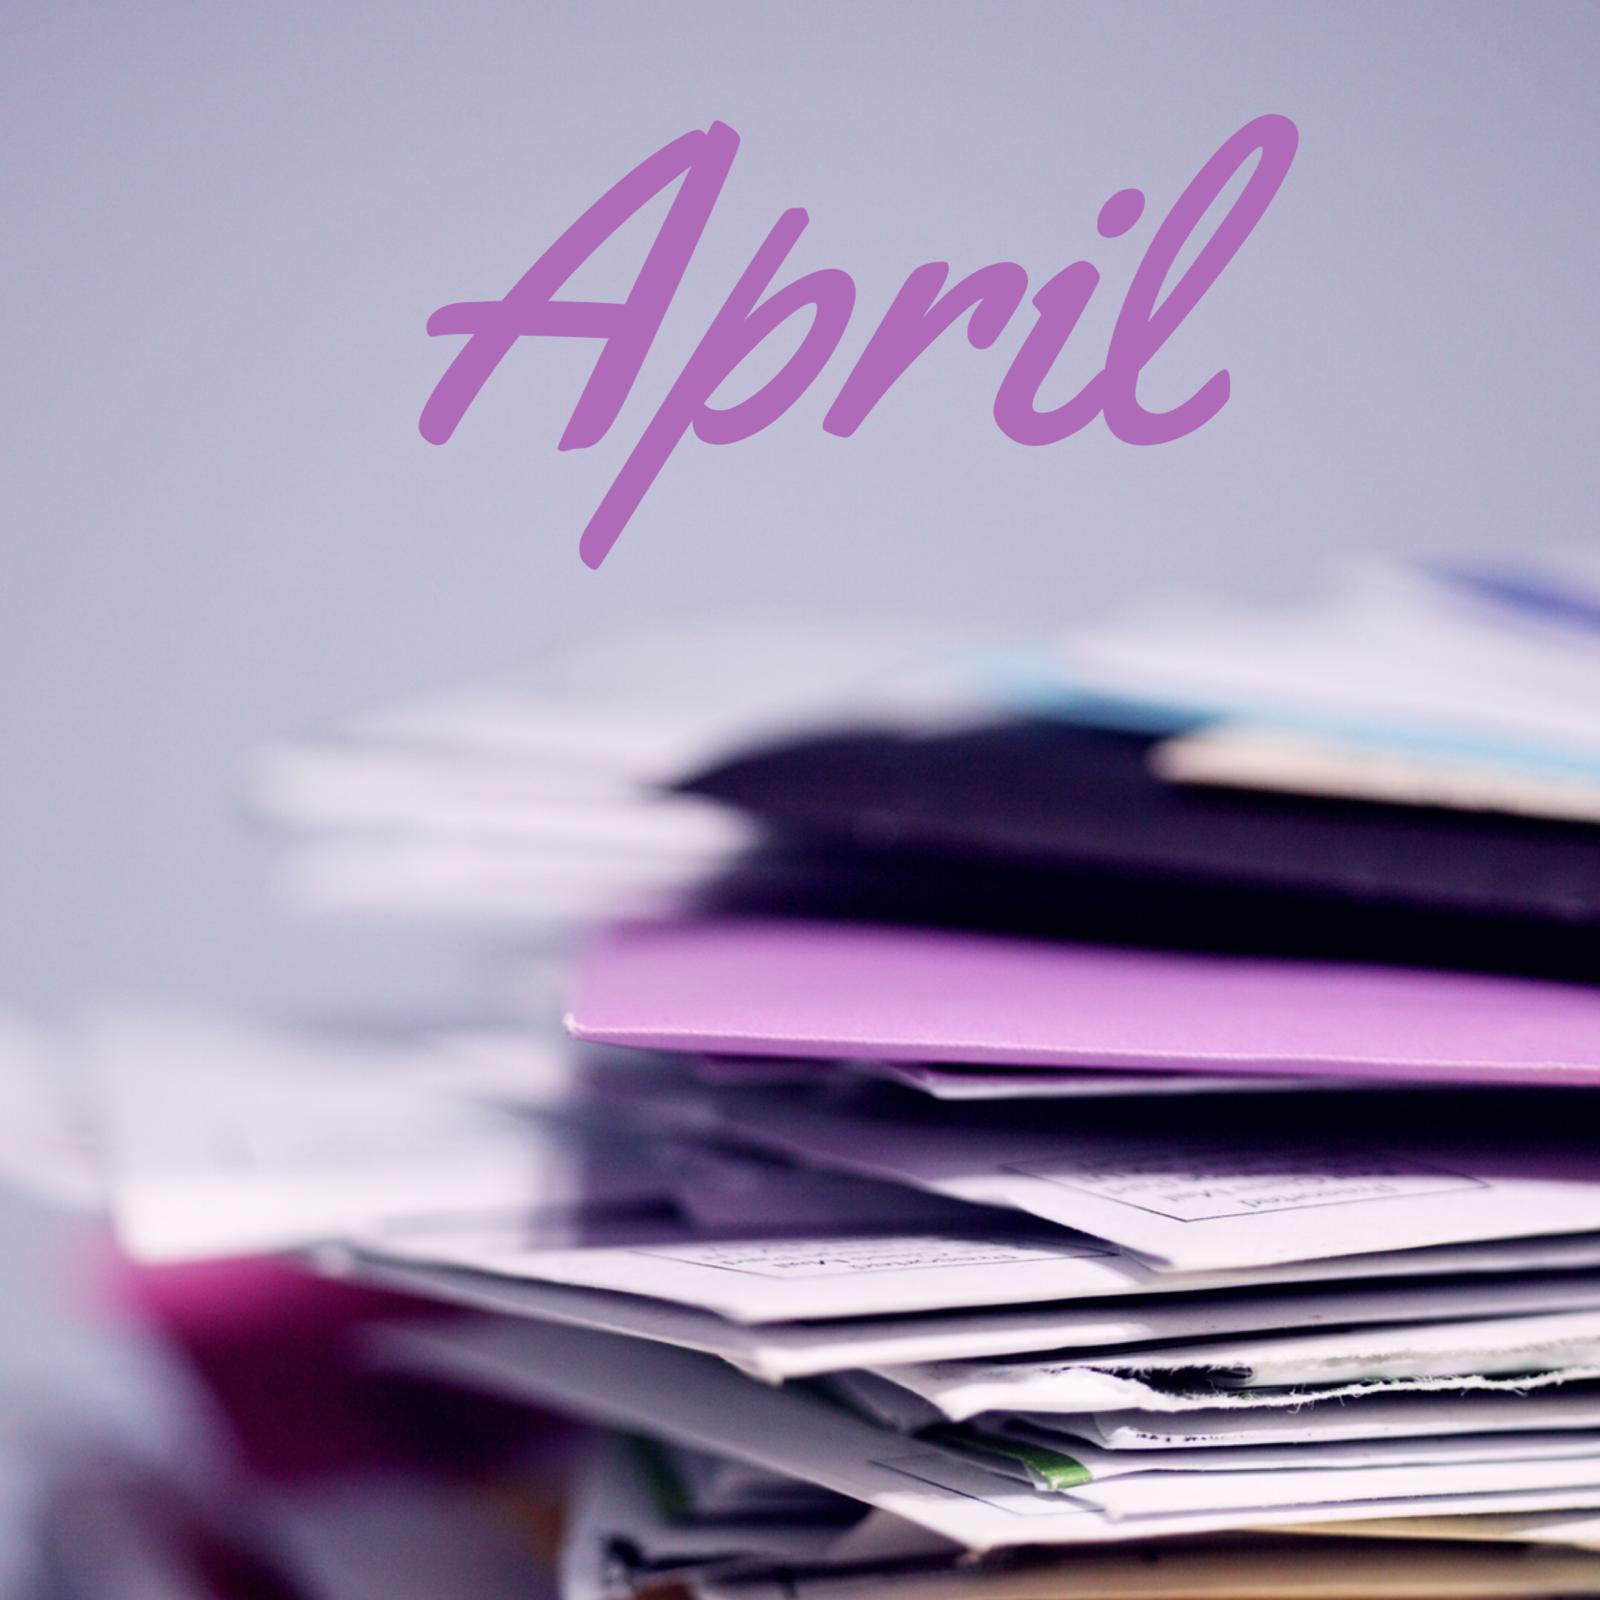 April 2020 meeting: Decluttering & simplifying your home